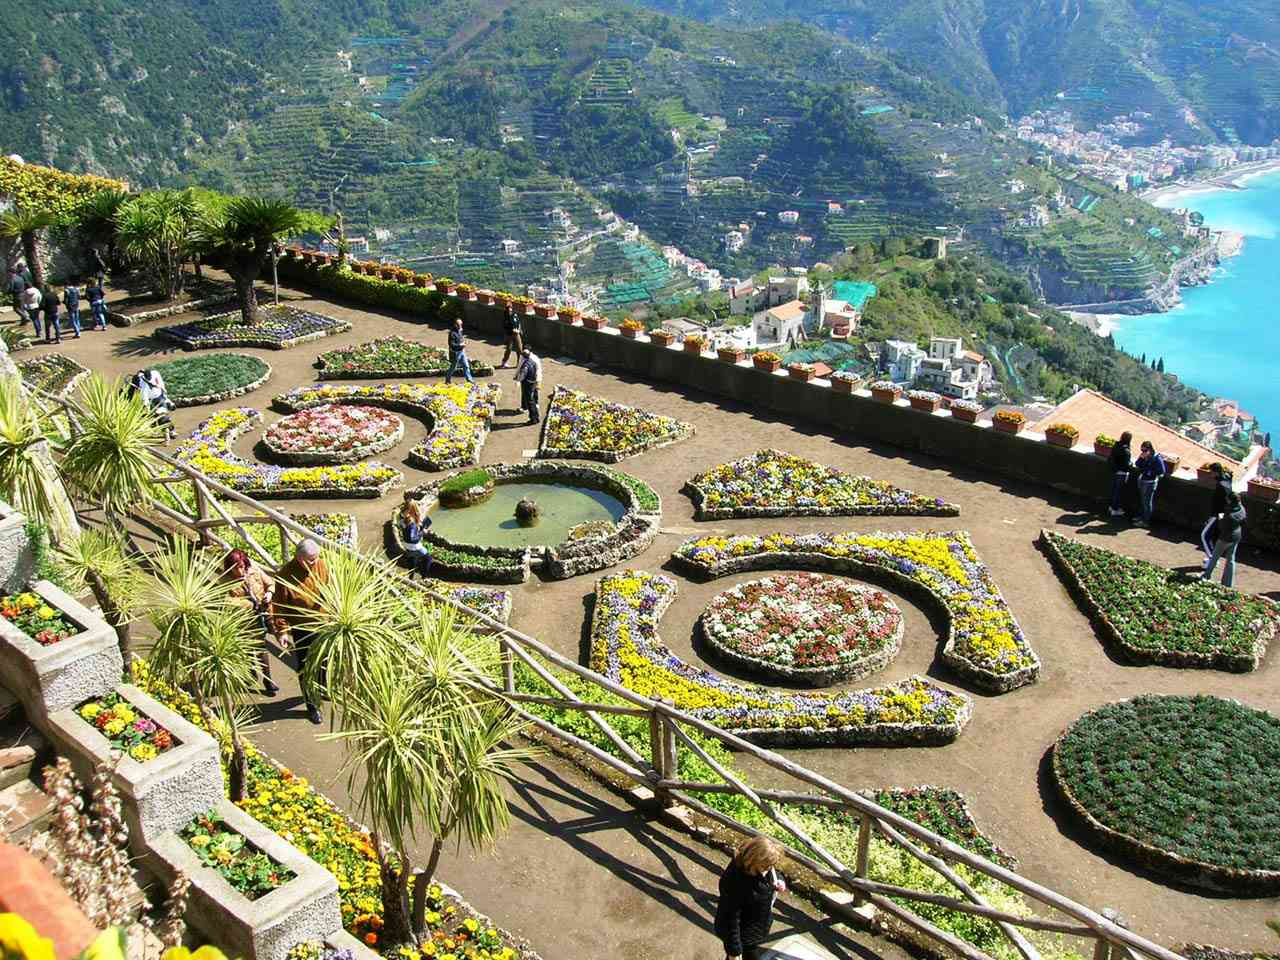 Villa_Rufolo_Ravello_18 - COPY (Copiar)